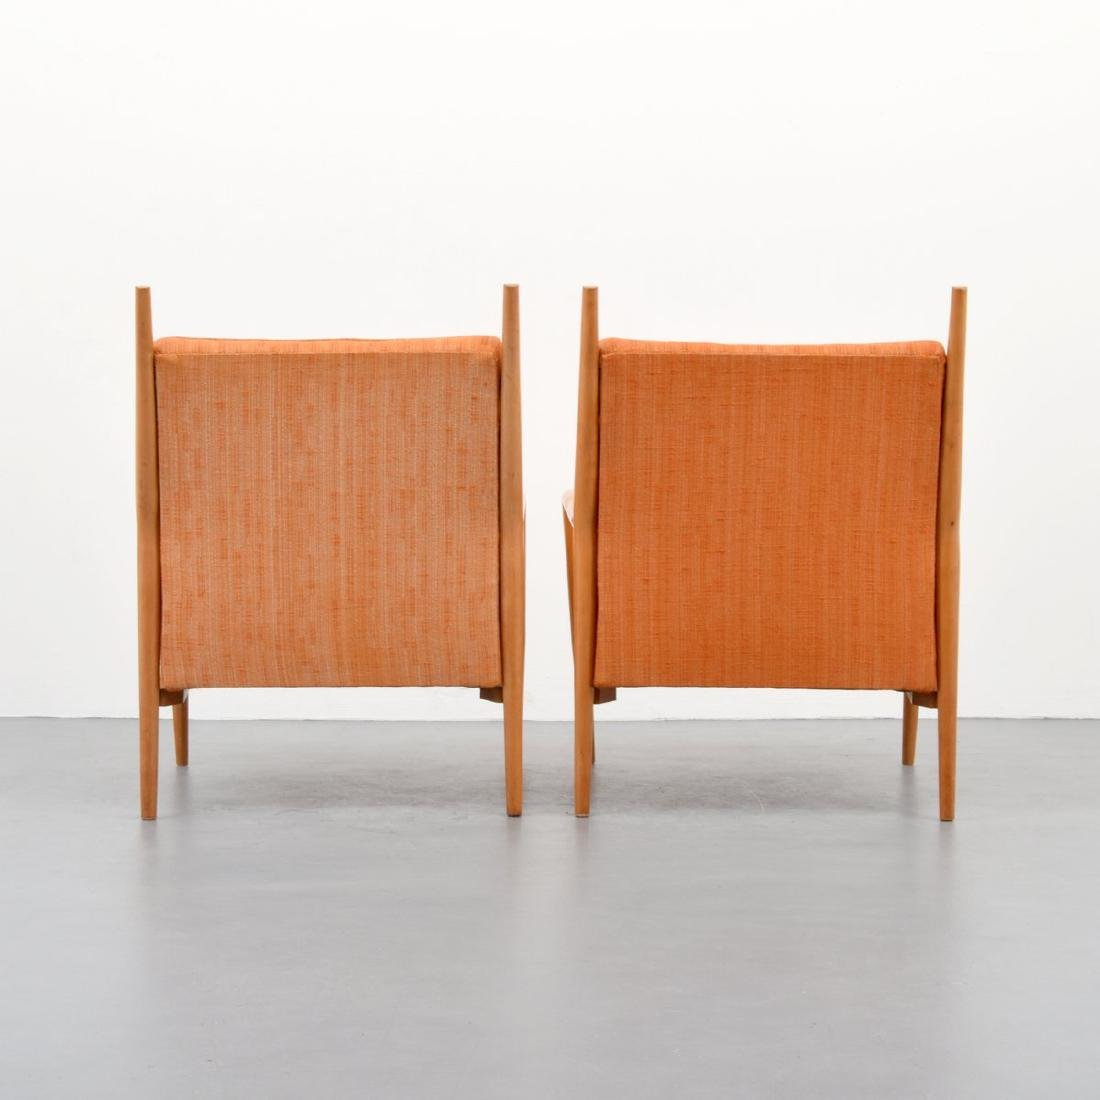 Pair of Paul McCobb Lounge Chairs - 3